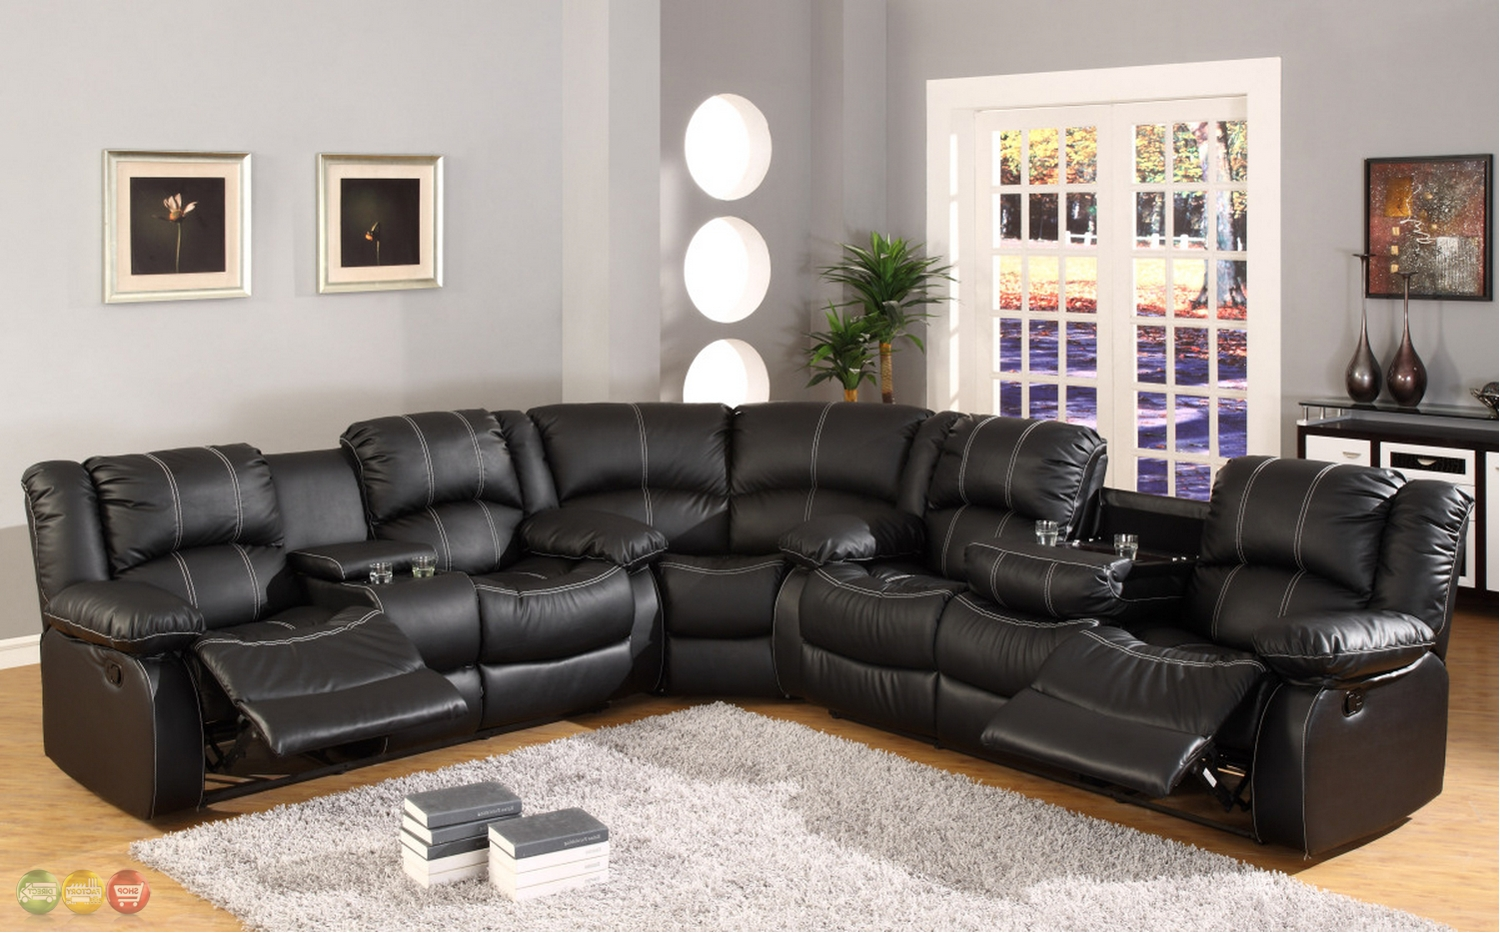 Current Black Faux Leather Reclining Motion Sectional Sofa W/ Storage Inside Sofas With Consoles (View 4 of 15)